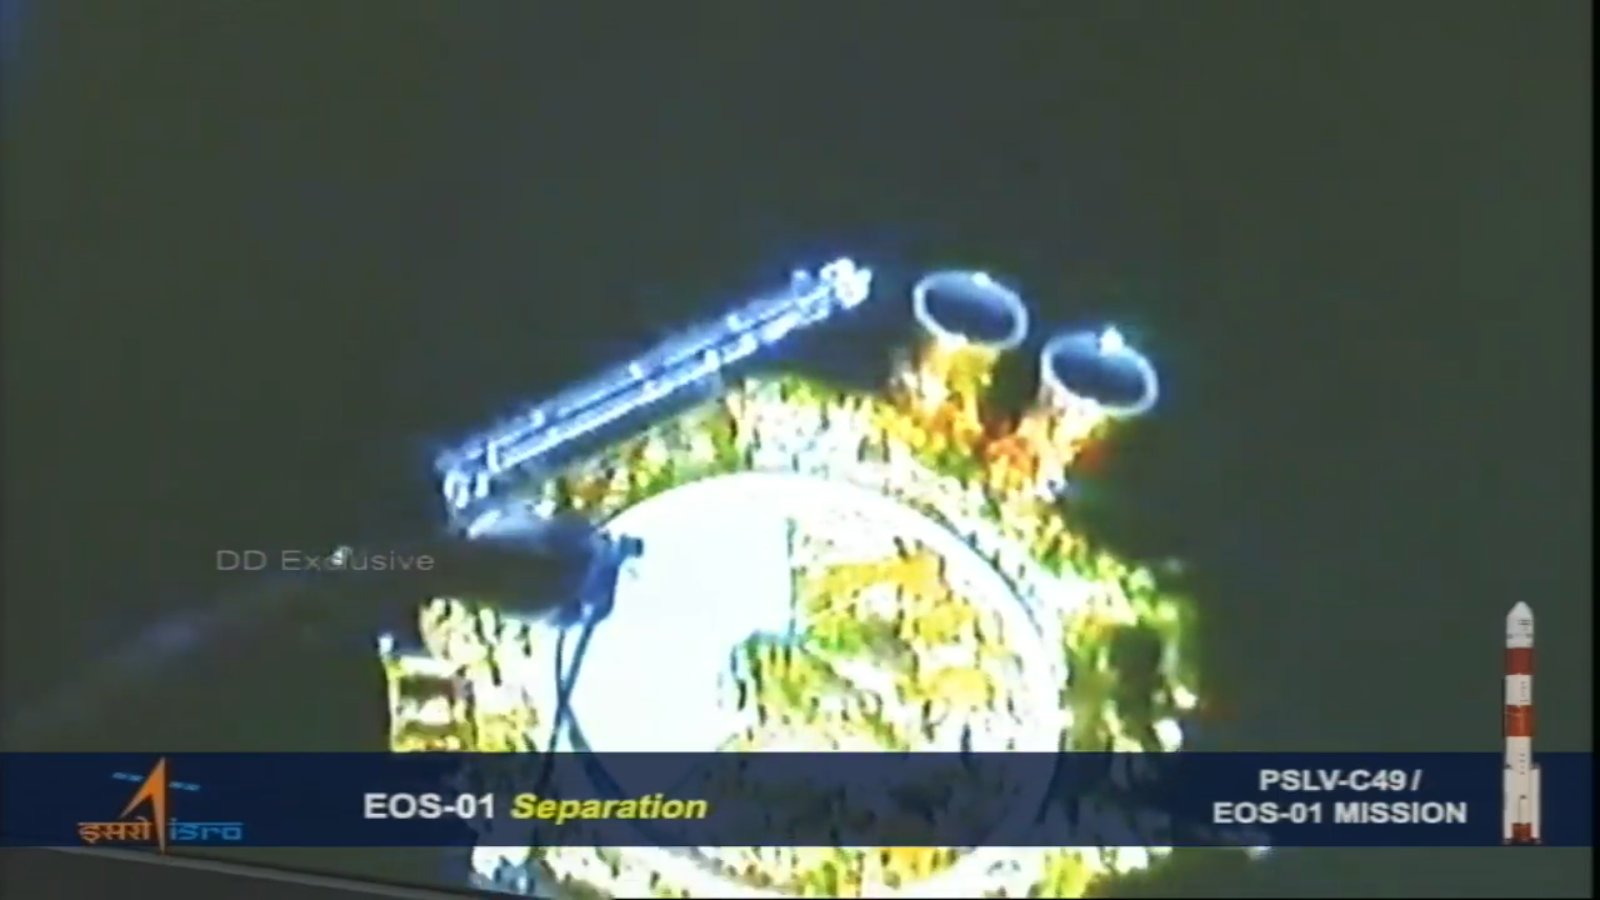 EOS01 successfully separated from fourth stage of #PSLVC49 and injected into orbit